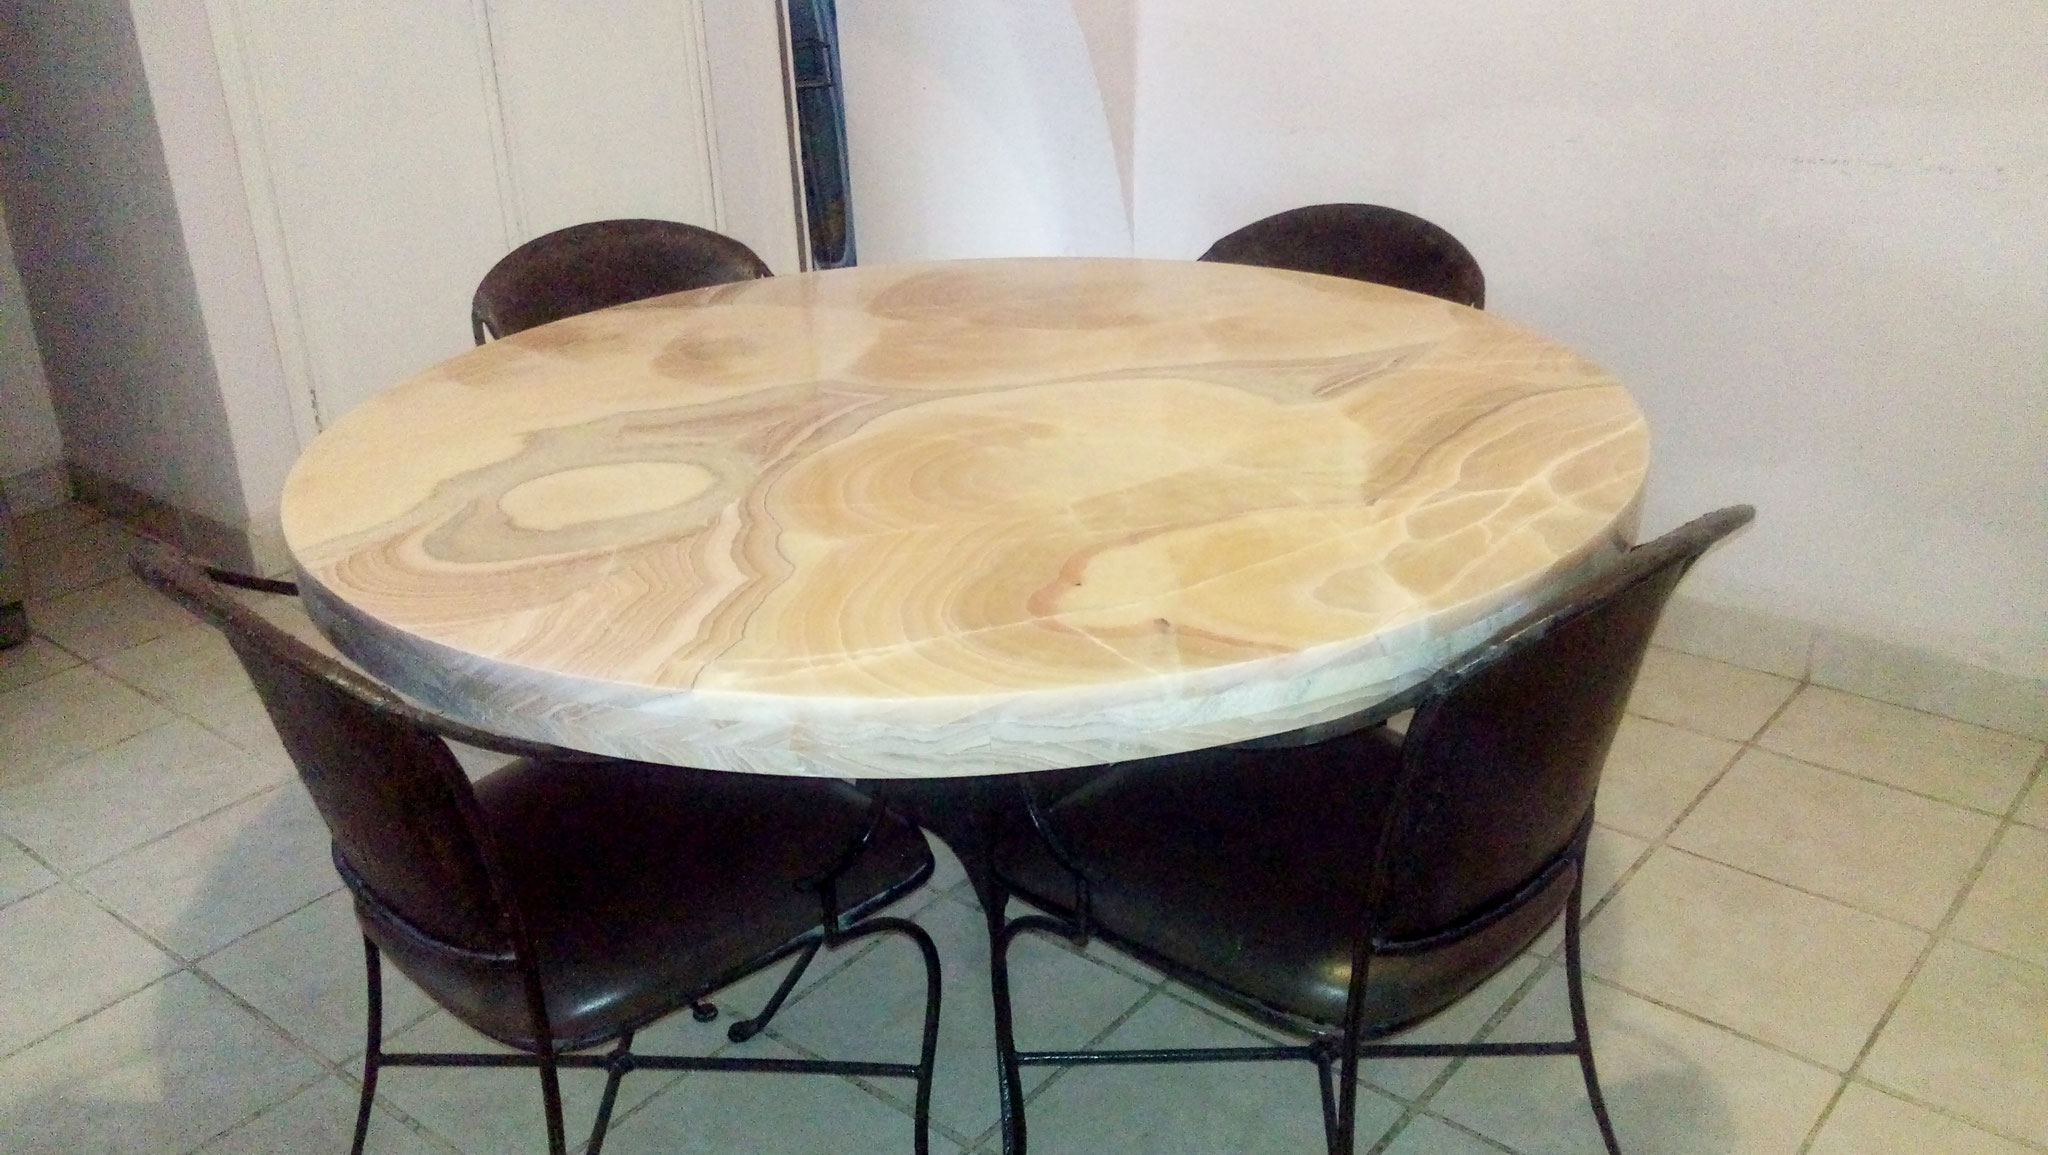 onyx table, onyx table price, manufactured  of onyx, onyx dining table, onyx table tops, onyx dining table price, onyx dining table manufactured